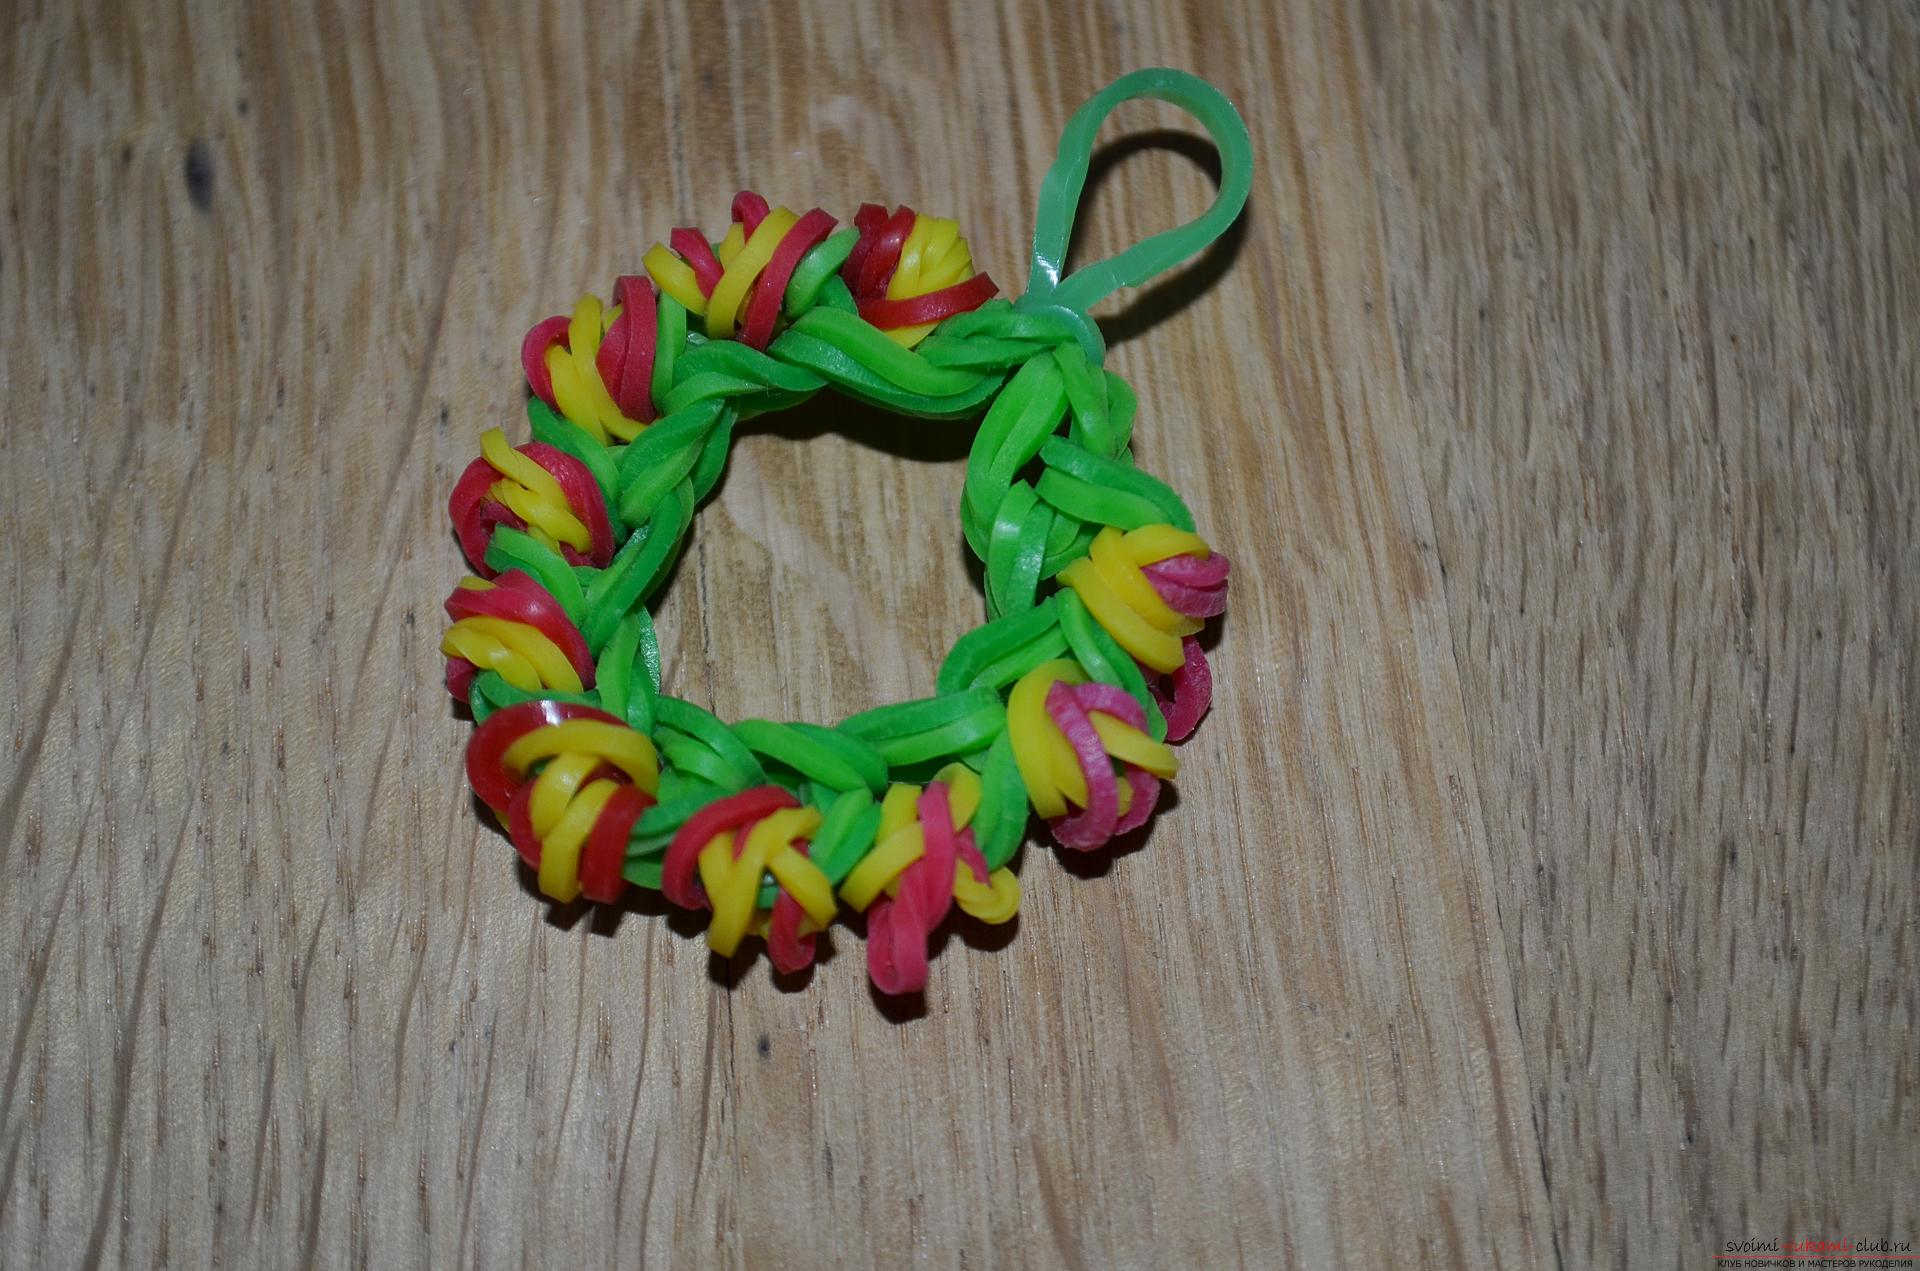 A photo for a lesson on the weaving of a Christmas wreath. Photo Number 21